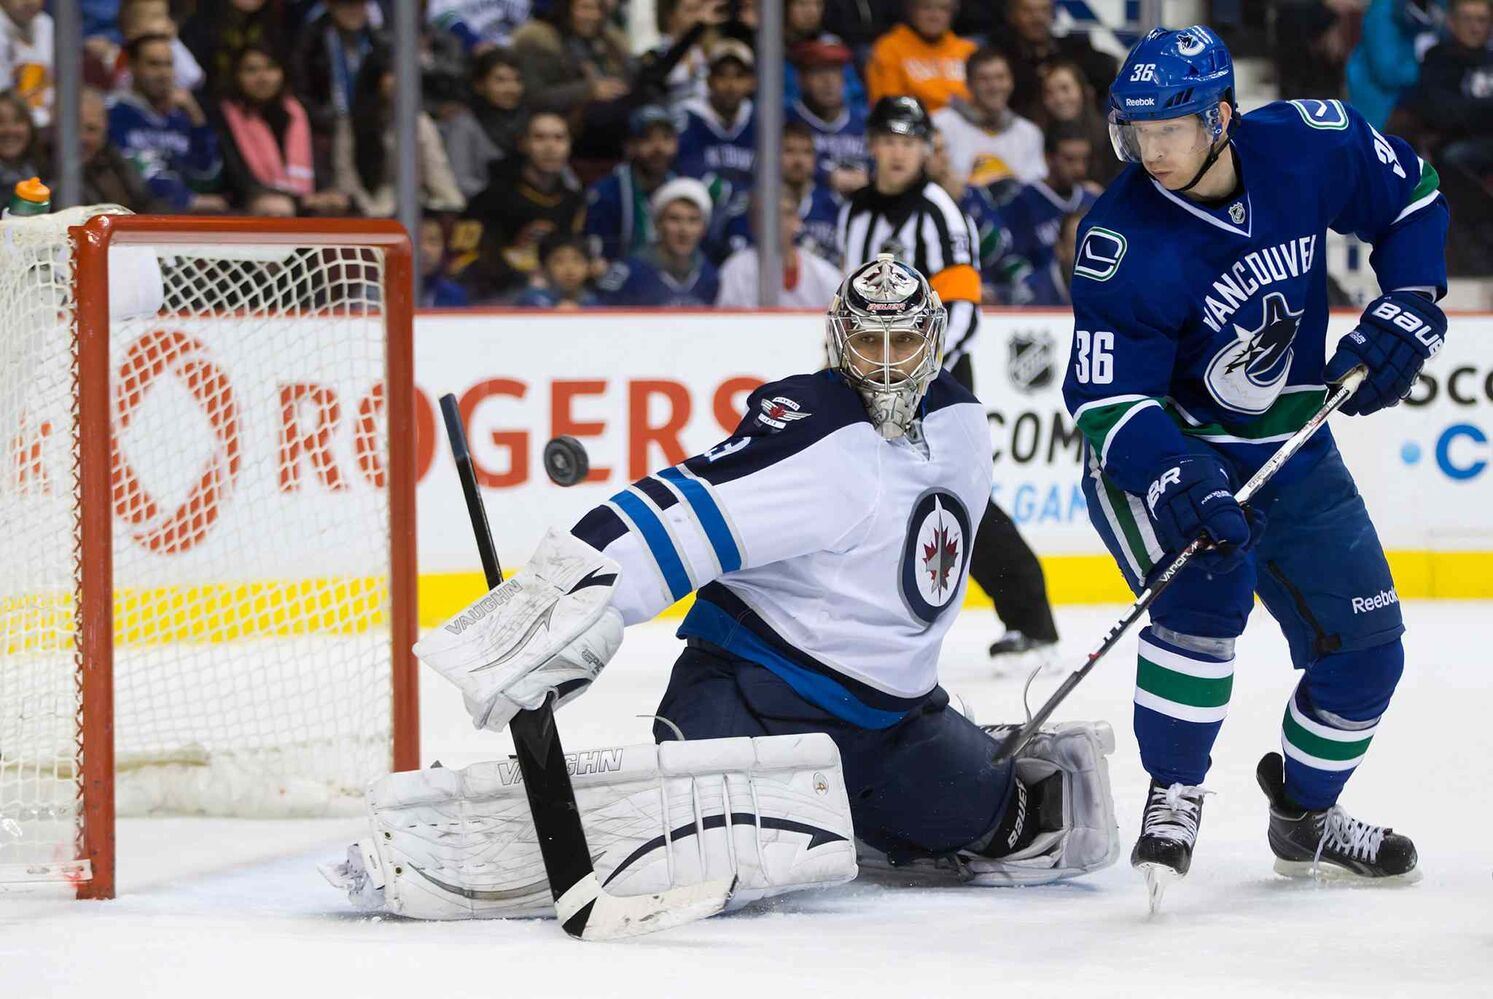 Jannik Hansen (right) of the Vancouver Canucks tips the puck wide of Winnipeg Jets goalie Ondrej Pavelec. (DARRYL DYCK / THE CANADIAN PRESS)